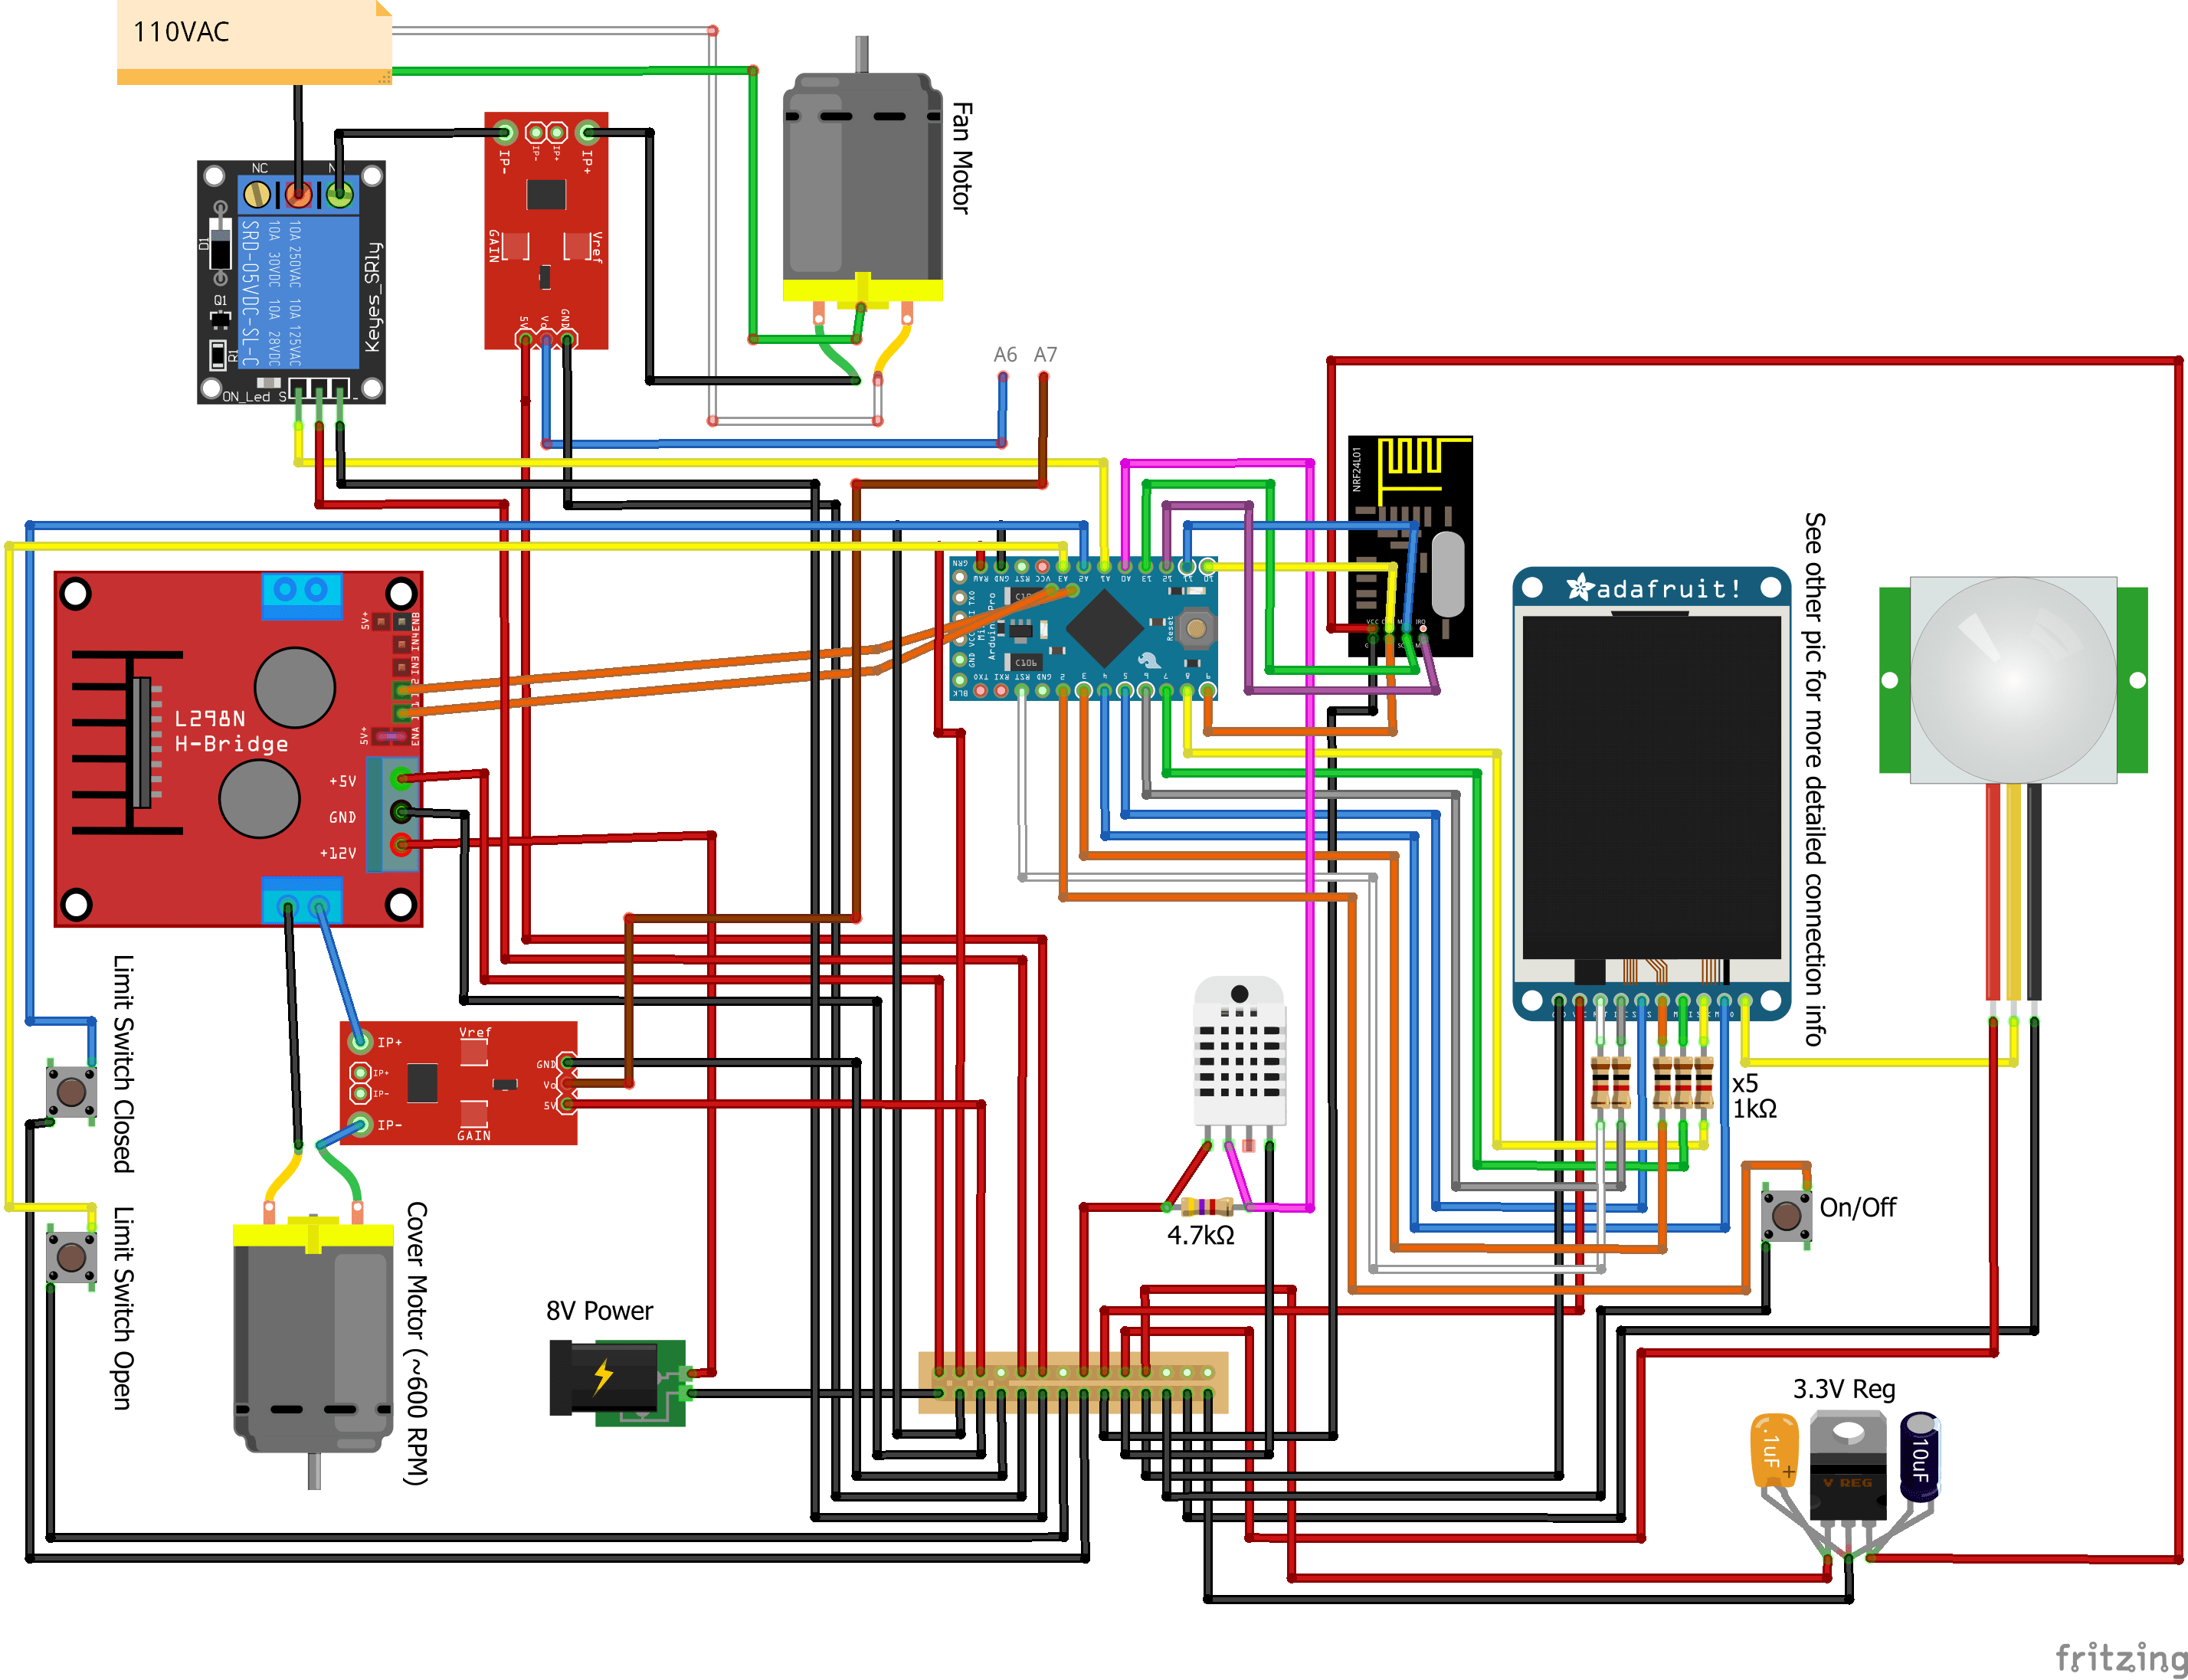 Fritzing Whole House Fan Wiring?resize\\\\\\\\\\\\\\\\\\\\\\\\\\\\\\\\\\\\\\\\\\\\\\\=665%2C511\\\\\\\\\\\\\\\\\\\\\\\\\\\\\\\\\\\\\\\\\\\\\\\&ssl\\\\\\\\\\\\\\\\\\\\\\\\\\\\\\\\\\\\\\\\\\\\\\\=1 clayton 1600g wood furnace wiring diagrams wiring diagrams clayton wood furnace wiring diagram at readyjetset.co